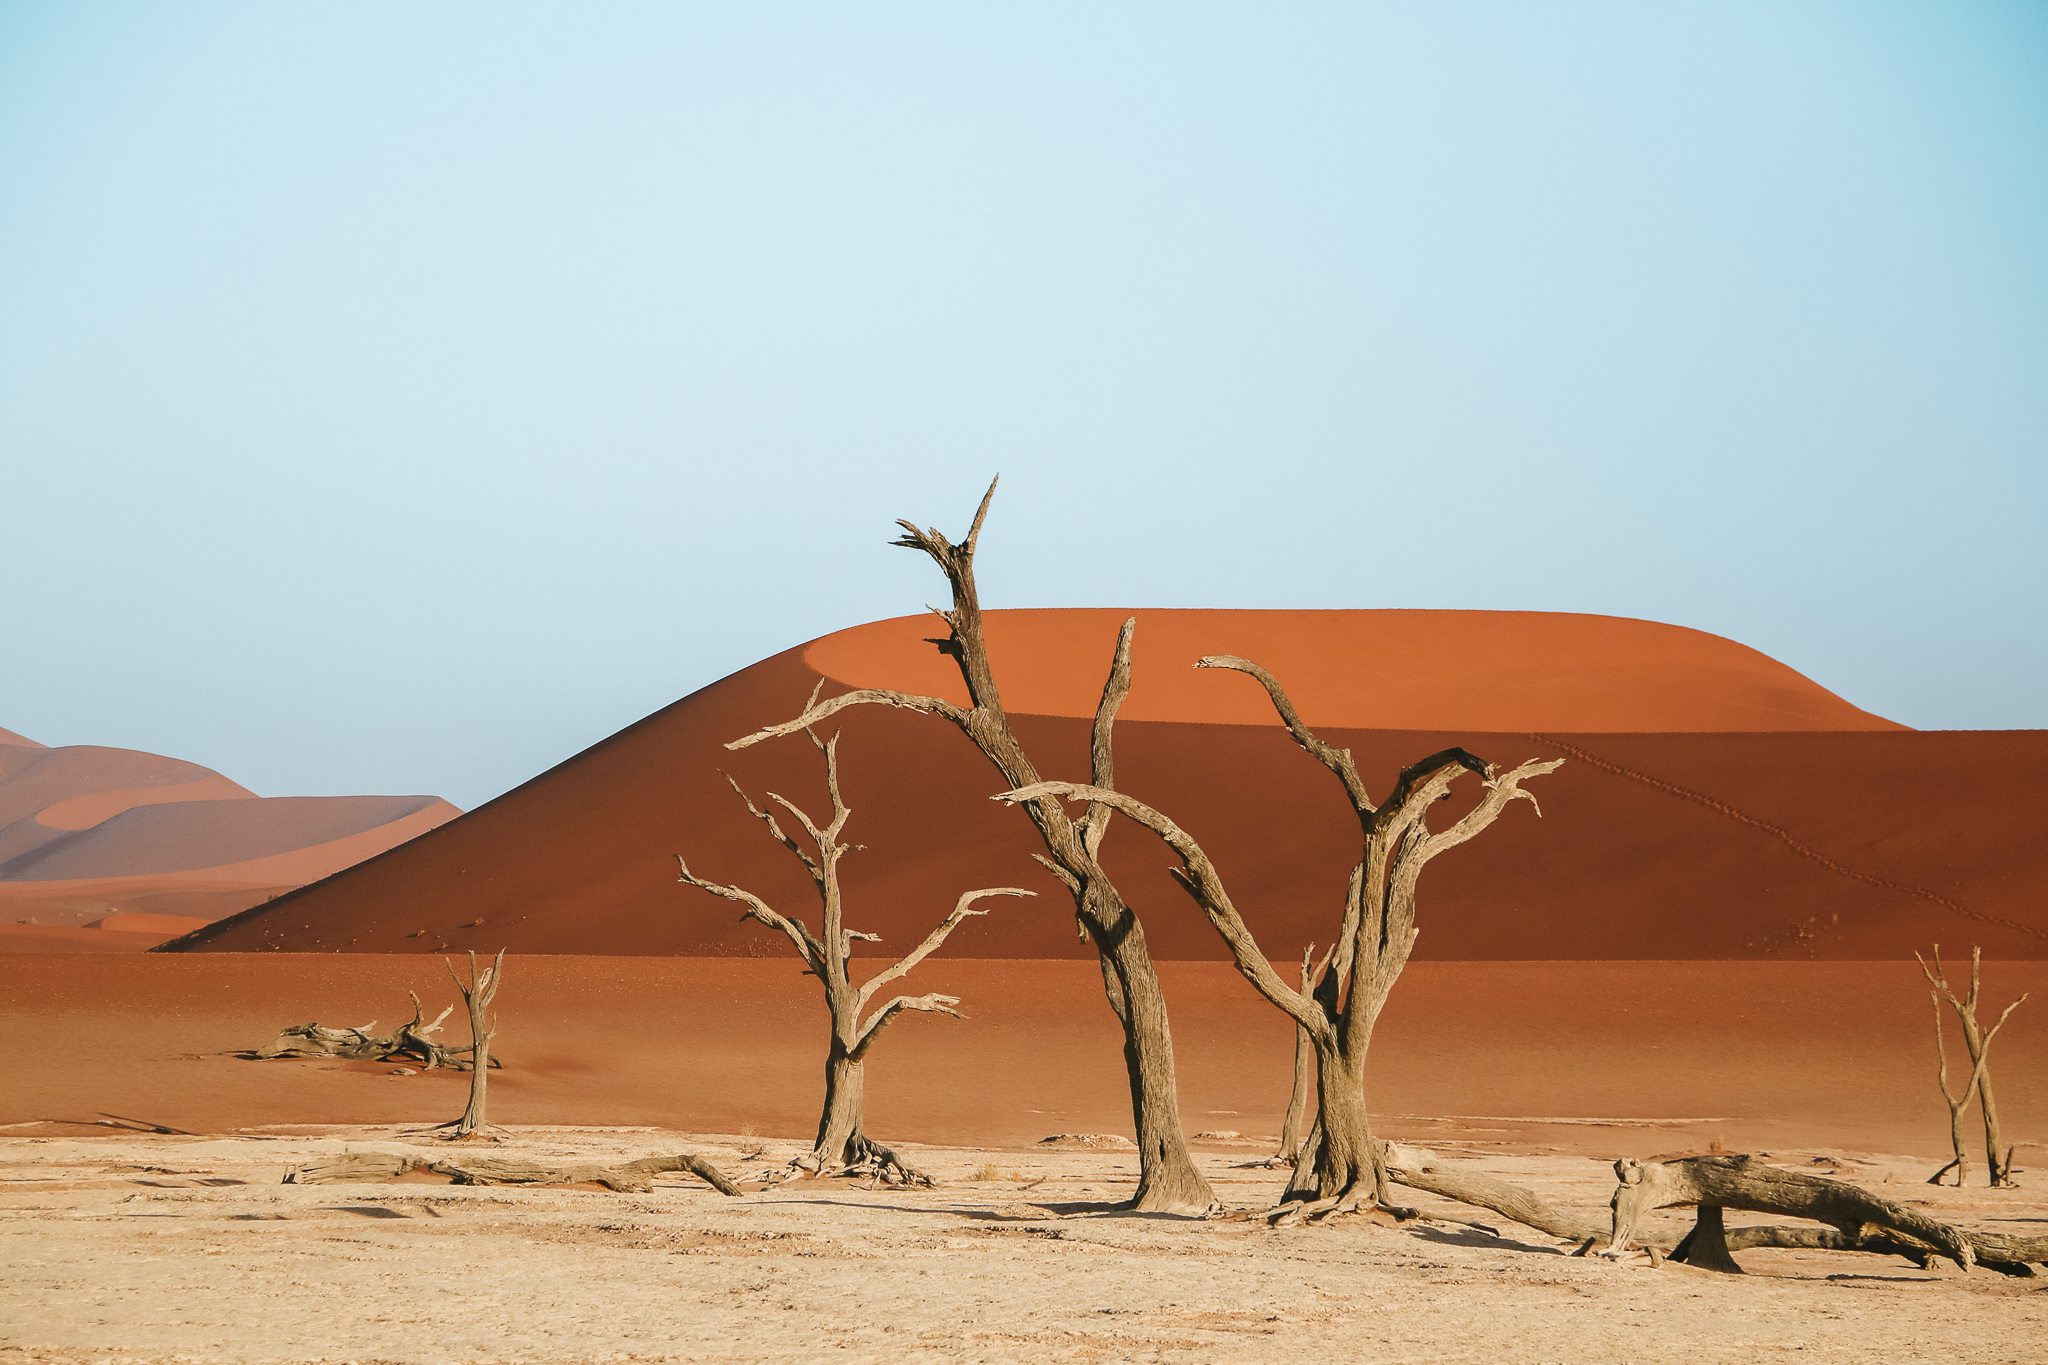 namibia in 25 photos in Deadsvlei